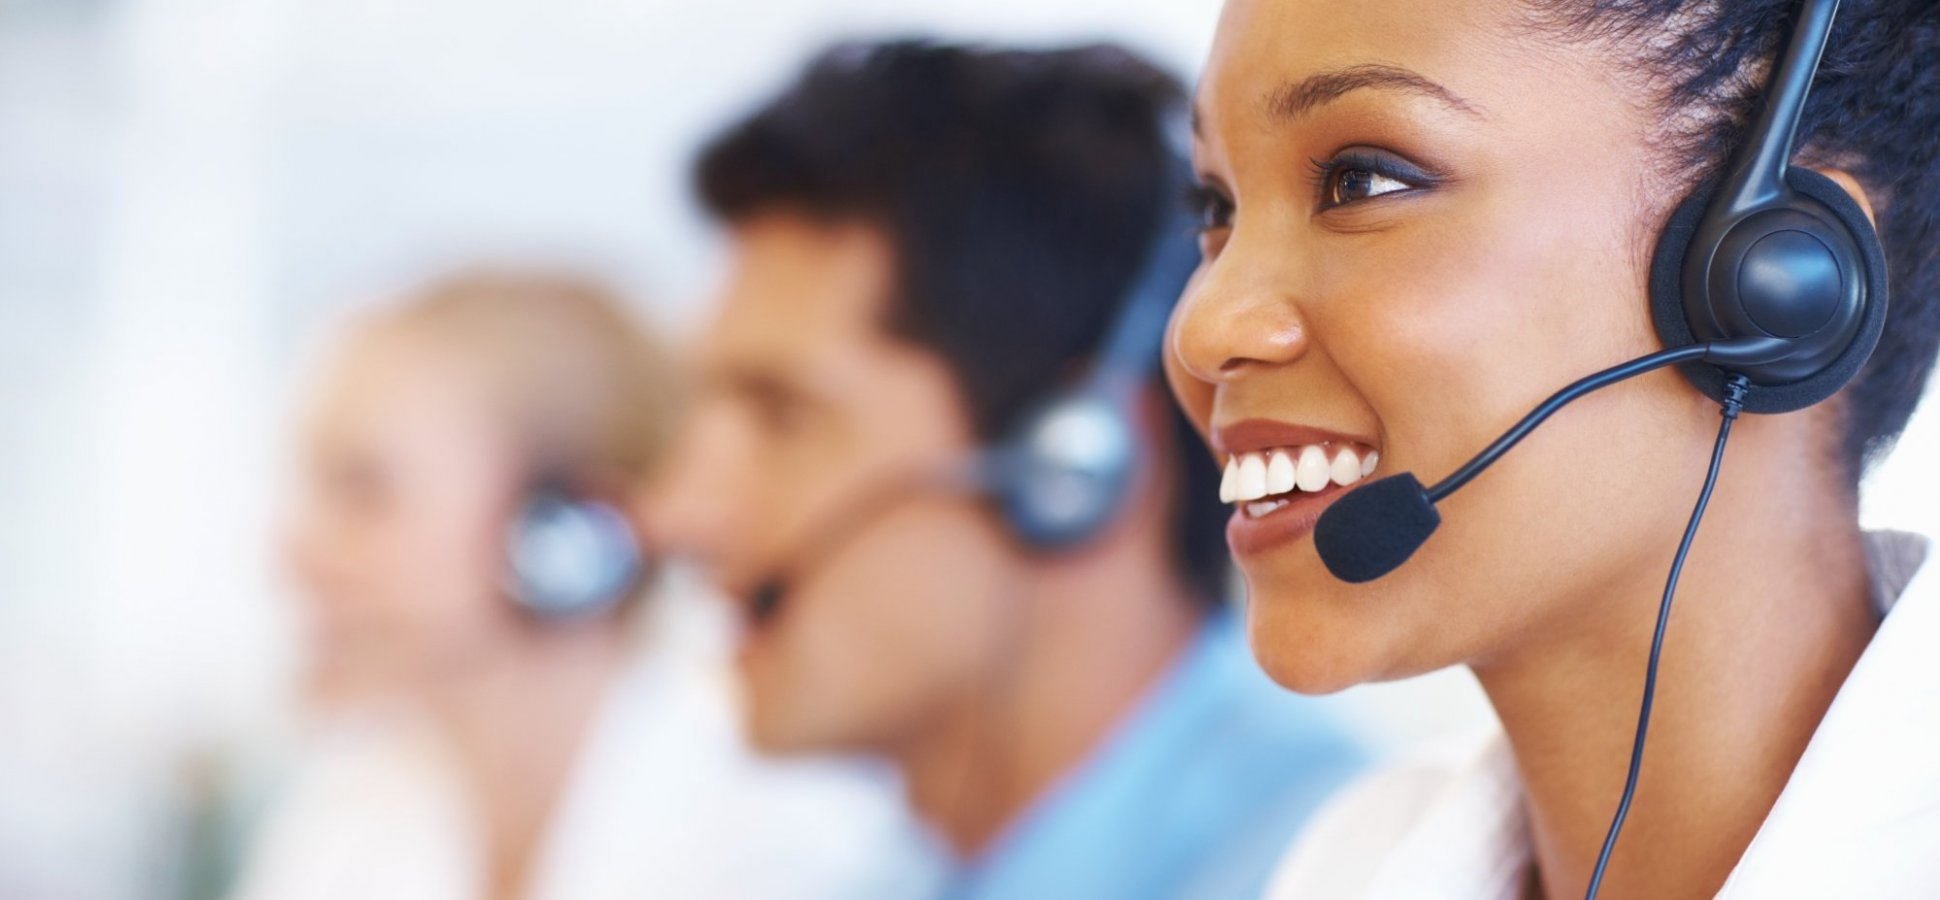 Could This New Contact Center Staffing Model be Revolutionary for Your Company?